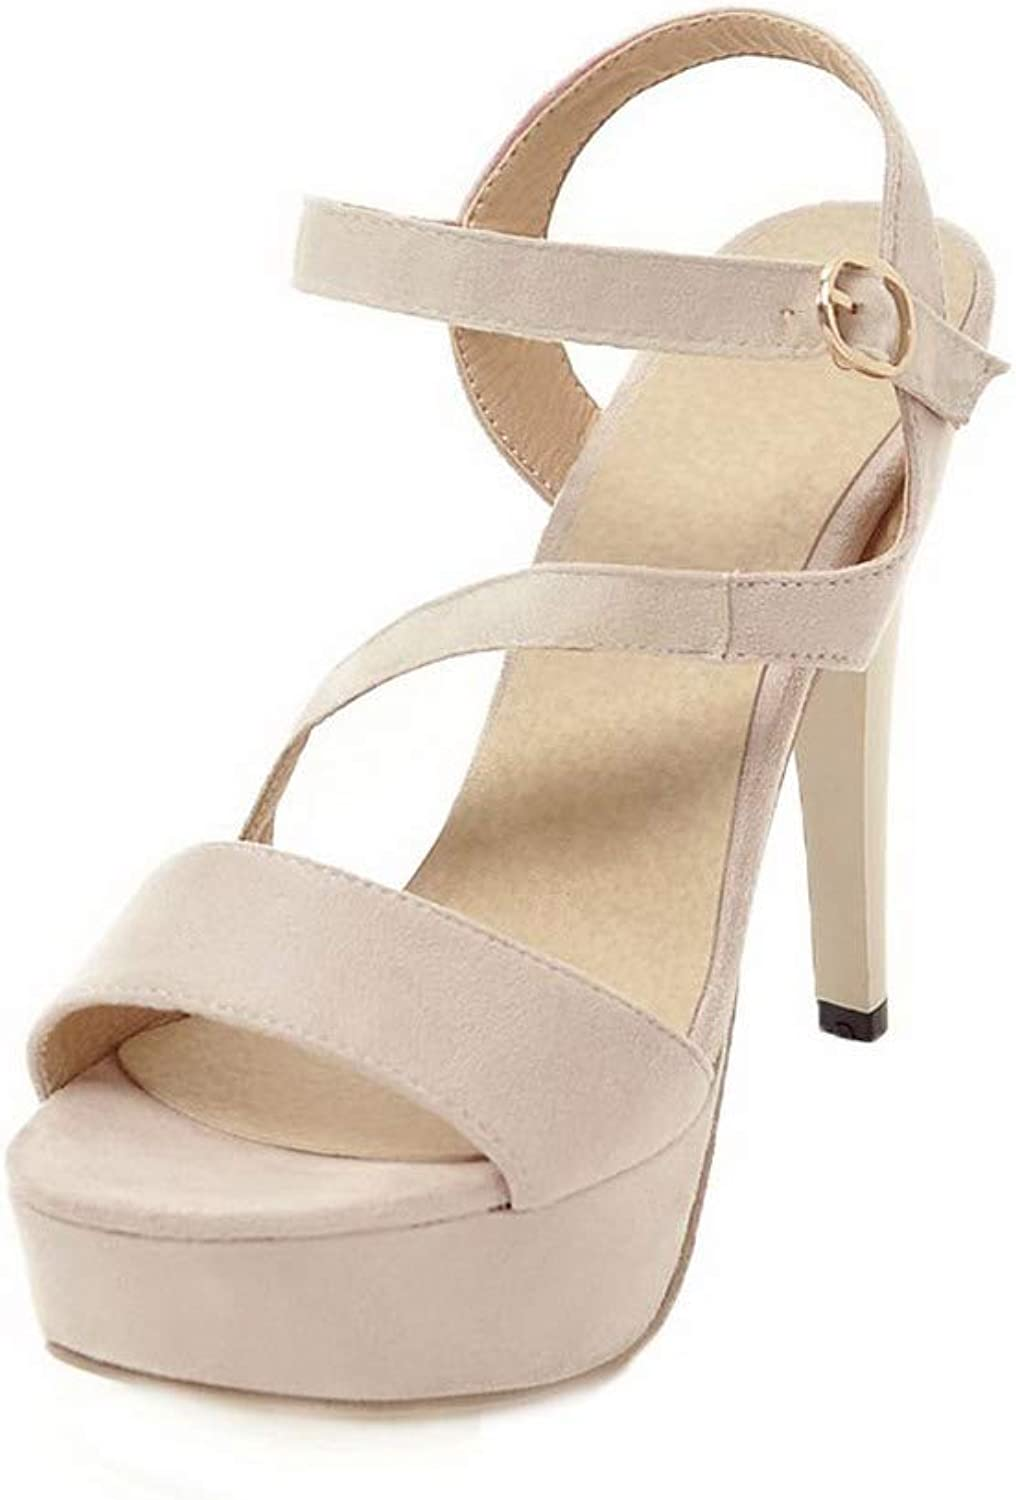 WeenFashion Women's Solid Frosted High-Heels Open-Toe Buckle Sandals, AMGLX010092